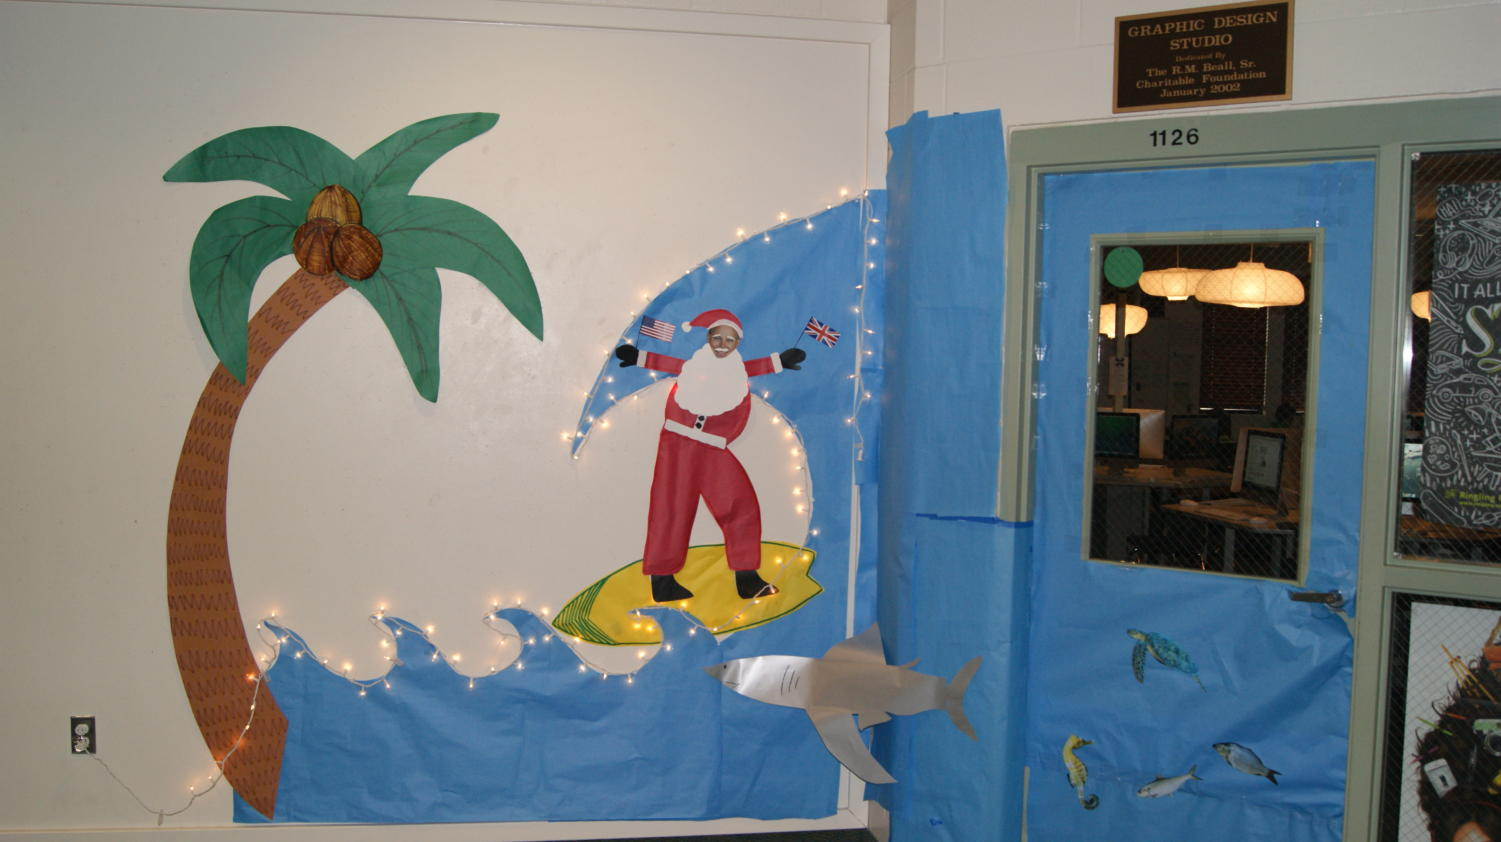 Ms. Grady's door took the regional approach toward this year's advisory door decoration contest with a Santa surf scene.